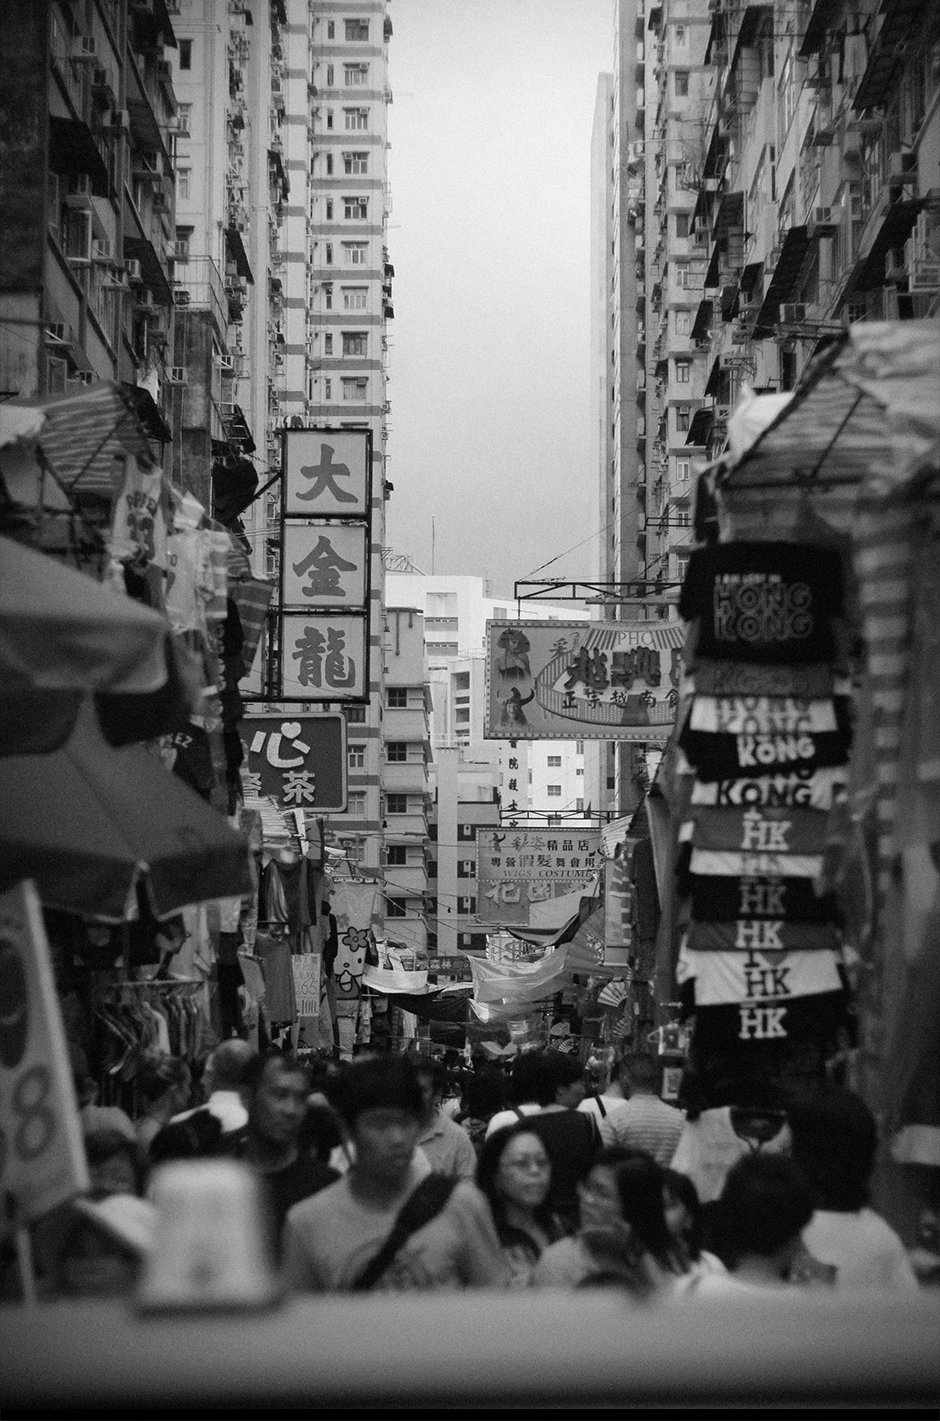 Street - Hongkong - Travel - Photography - Asian - City